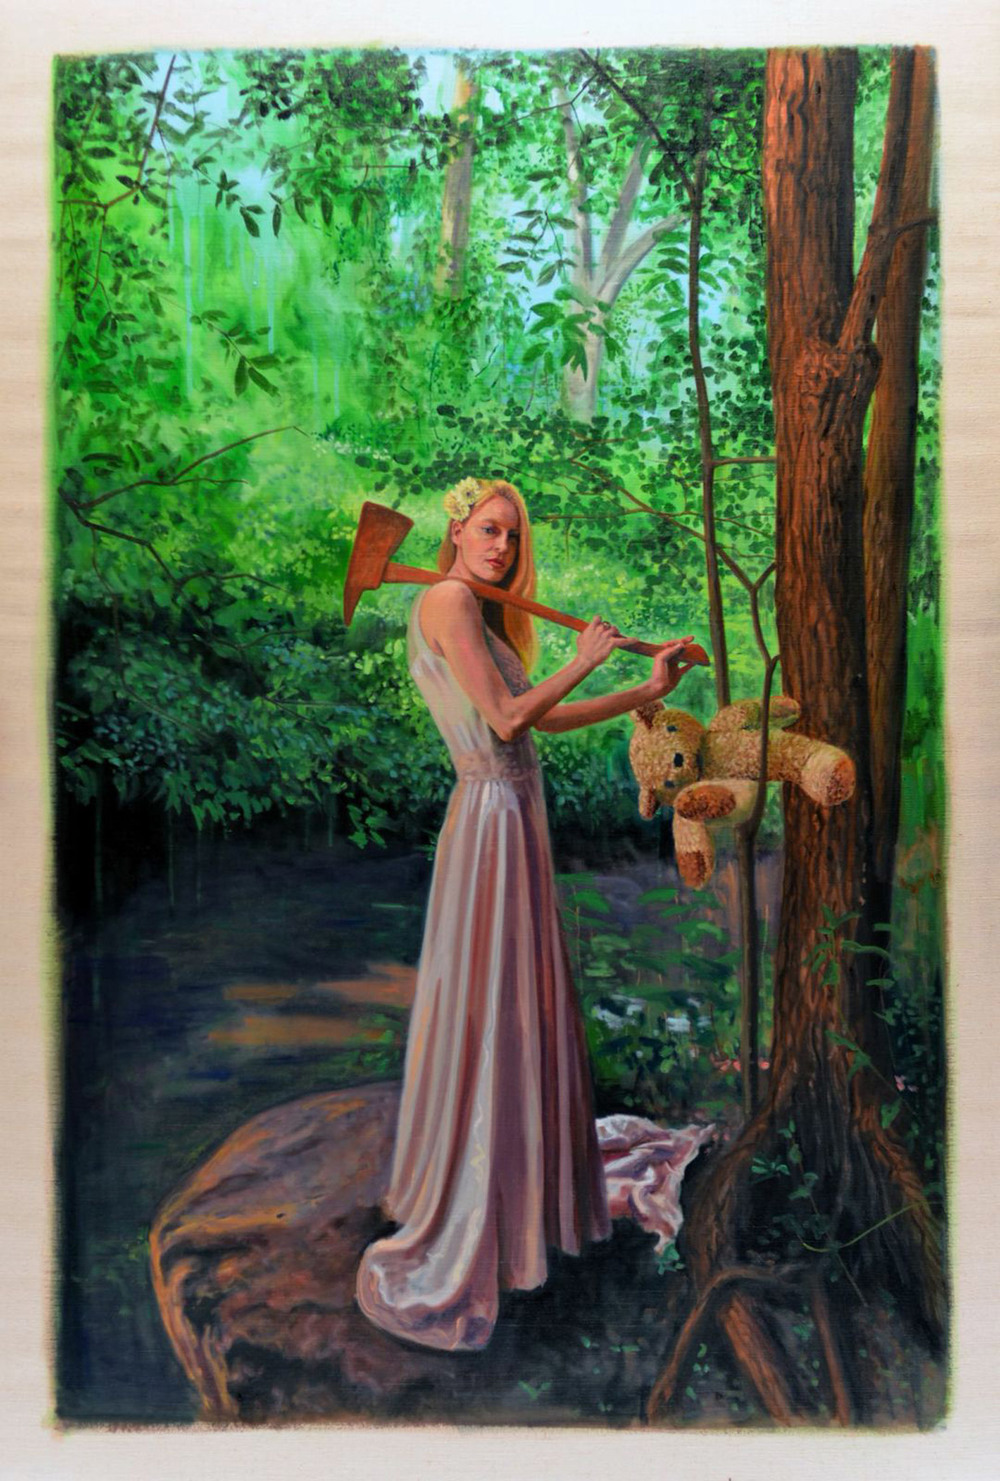 Girl with Axe, 2014